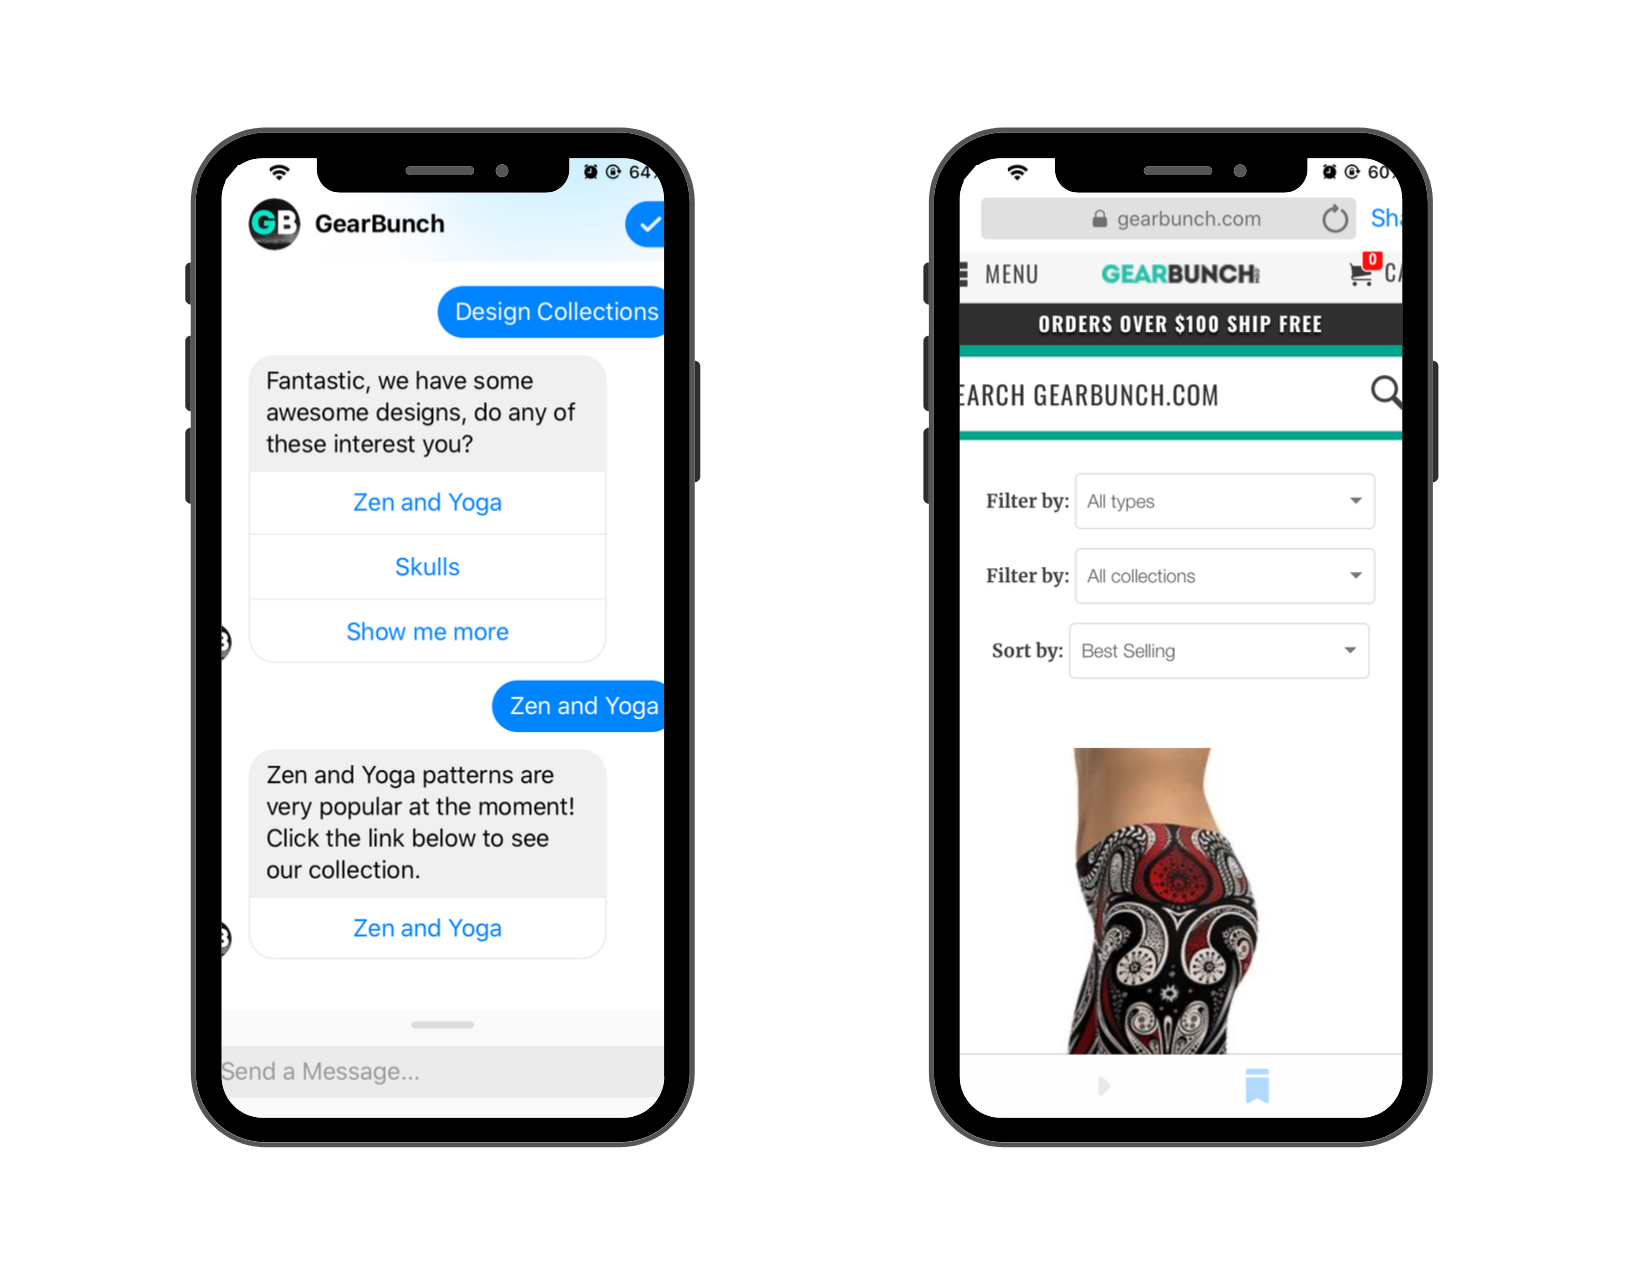 Ecommerce Trends 2020: GearBunch Chatbot Example